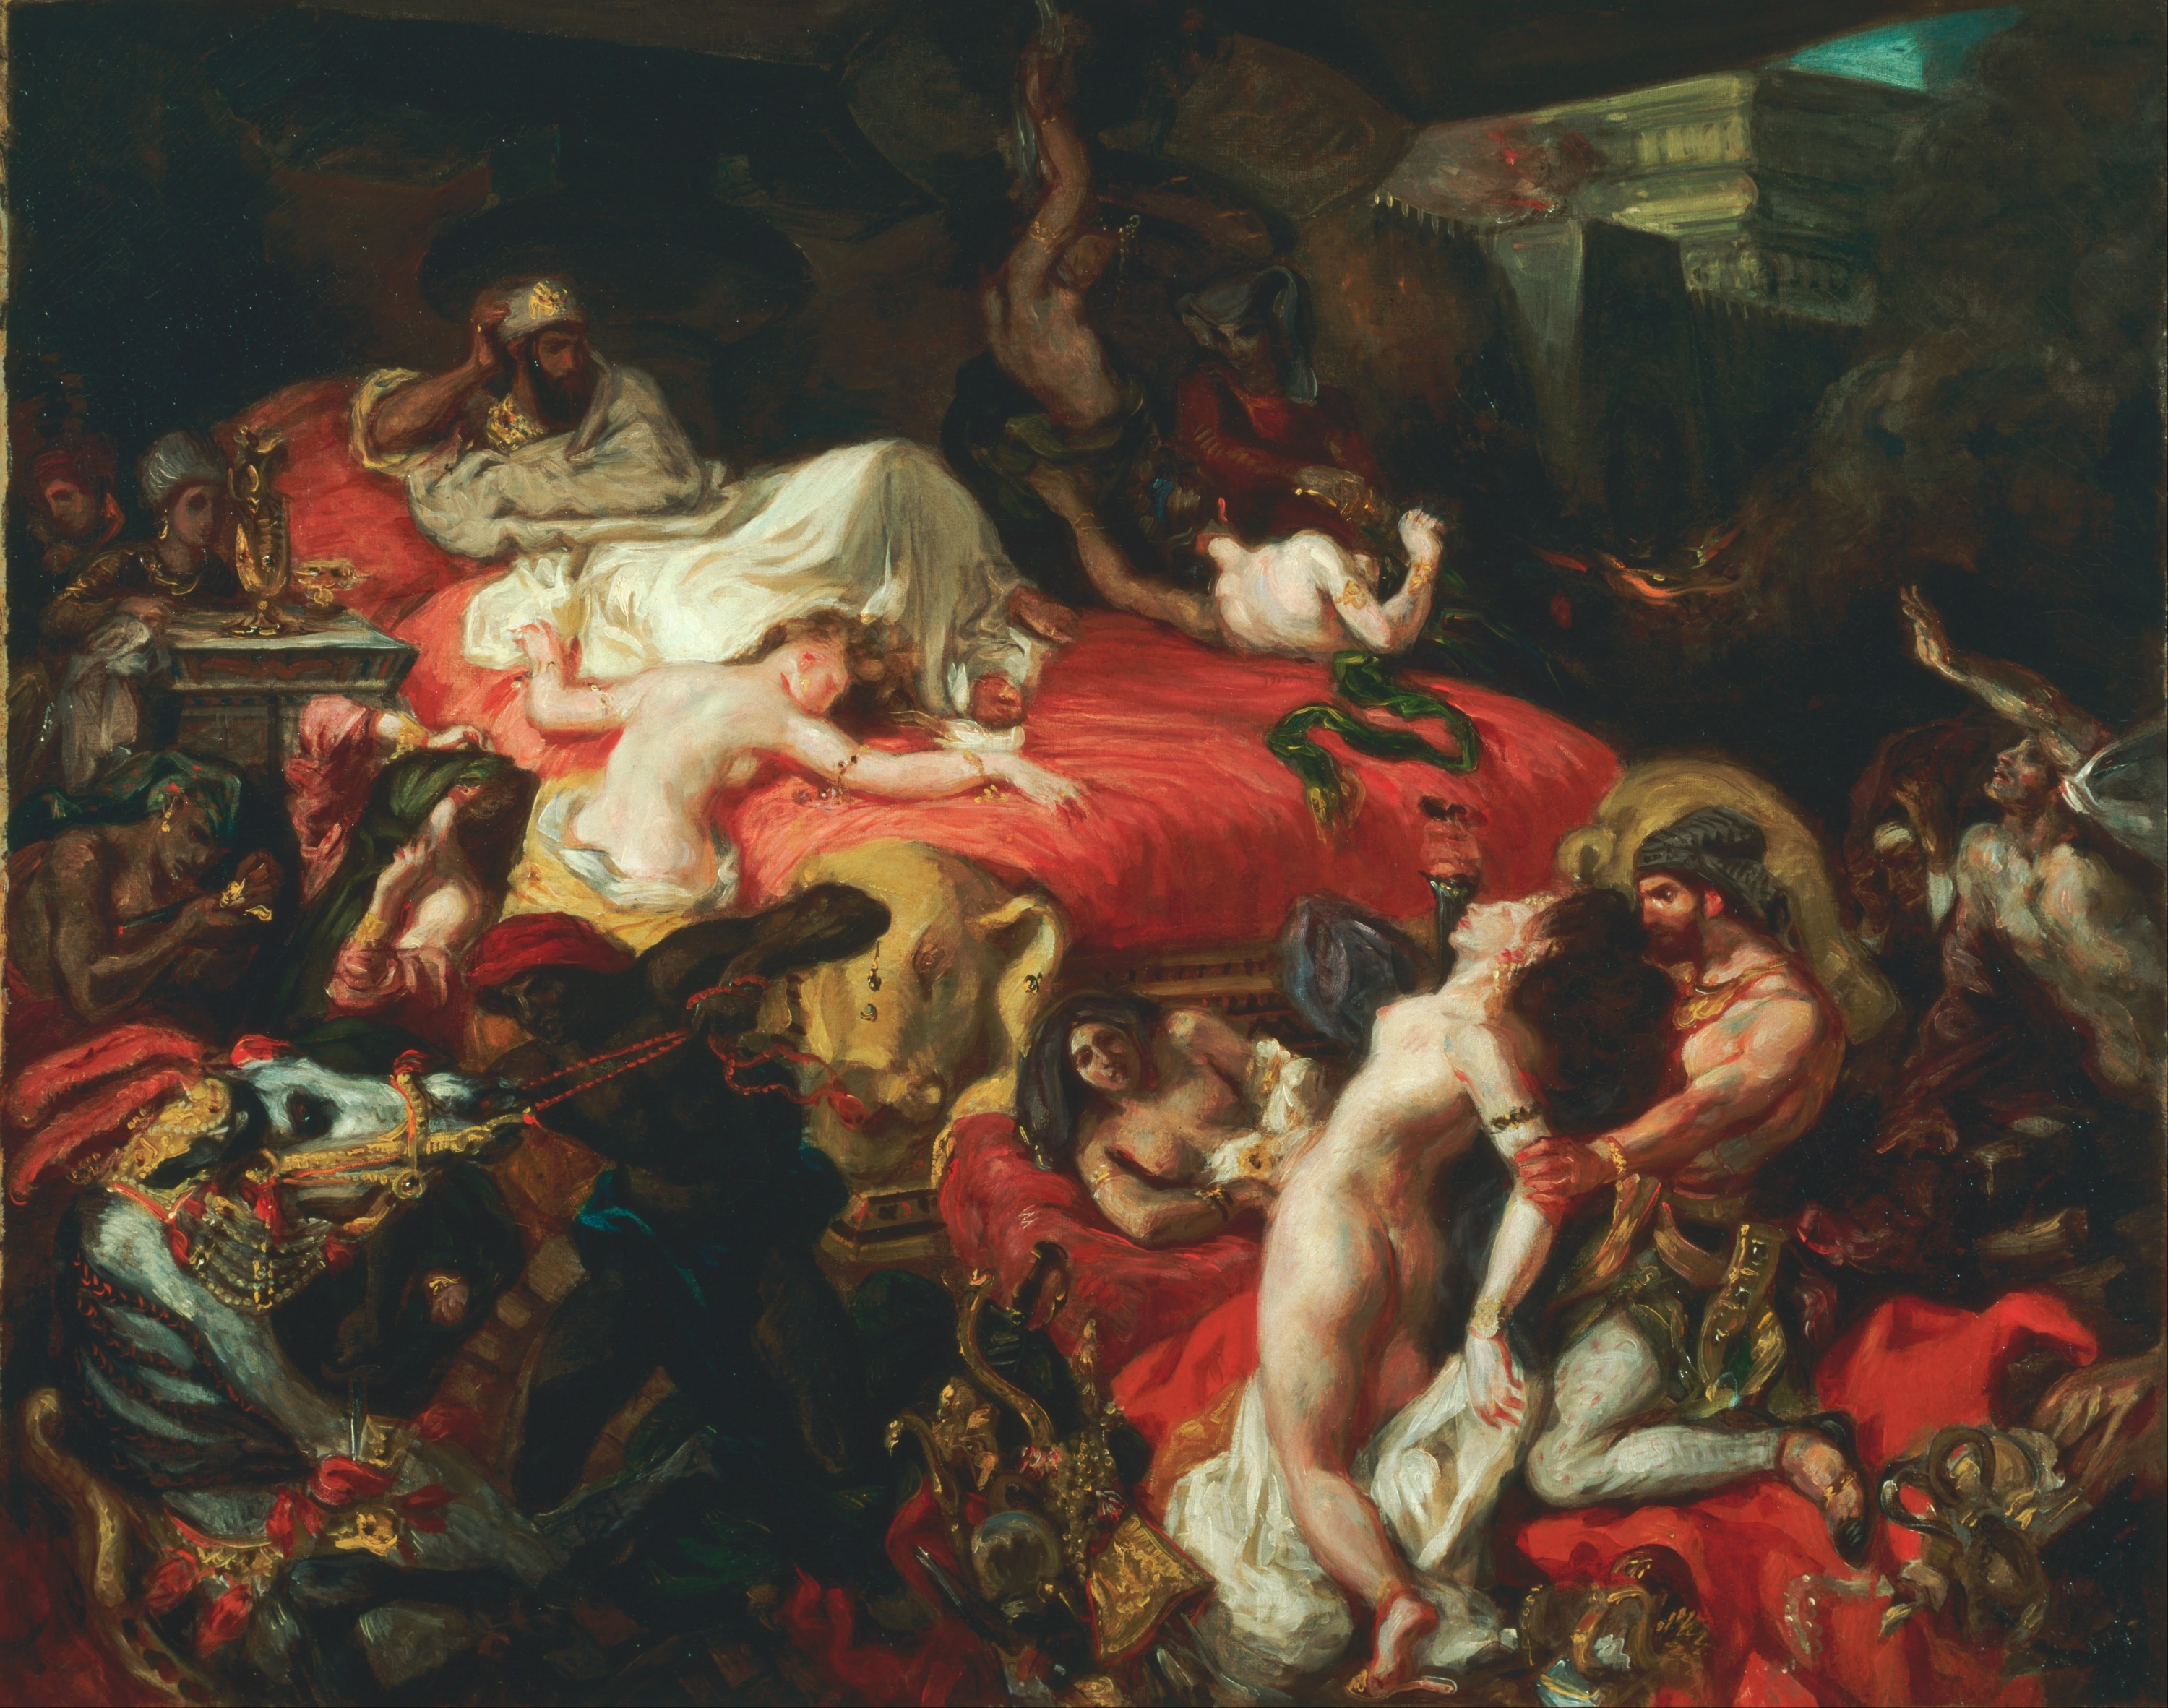 Ferdinand-Victor-Eugène_Delacroix,_French_-_The_Death_of_Sardanapalus_-_Google_Art_Project.jpg